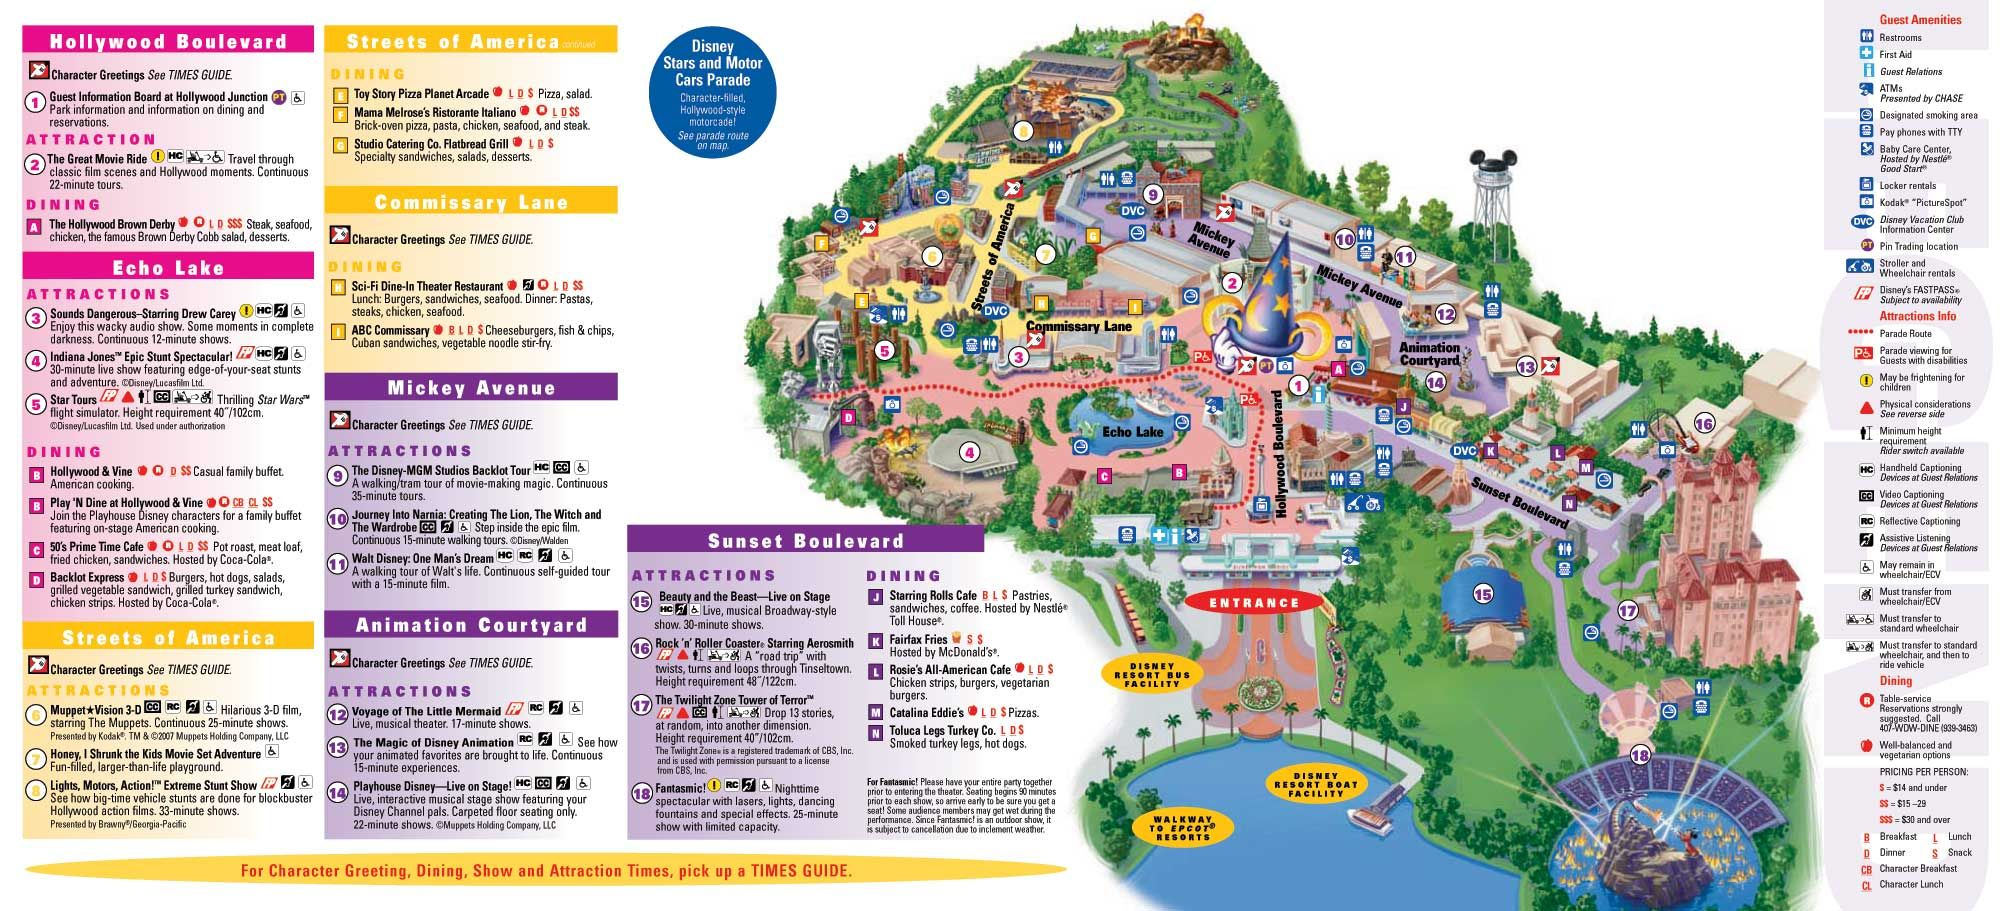 Hollywood Studios / MGM Studios Orlando 2012 Map | Disney World in on